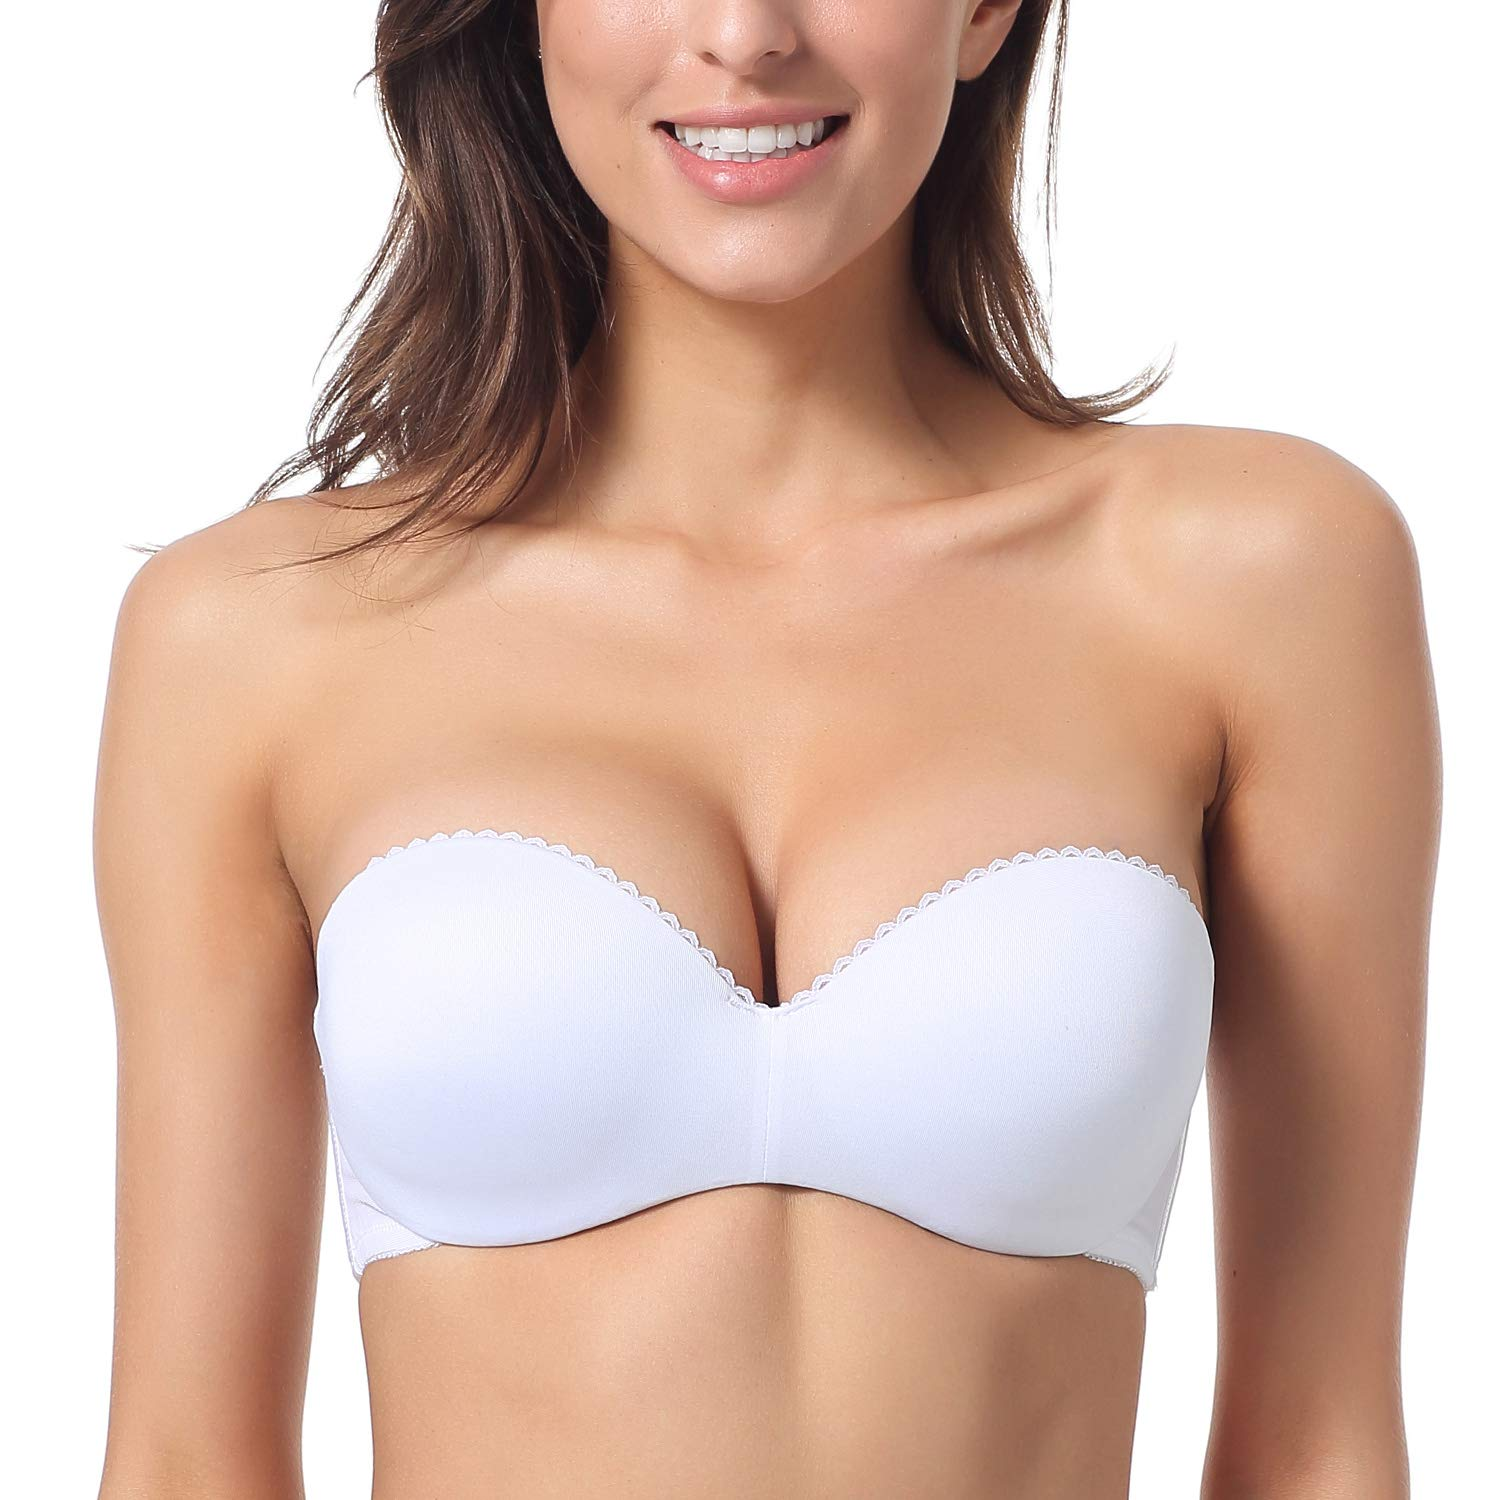 Dobreva Women's Convertible Multiway Underwire Padded Strapless Push Up Bra